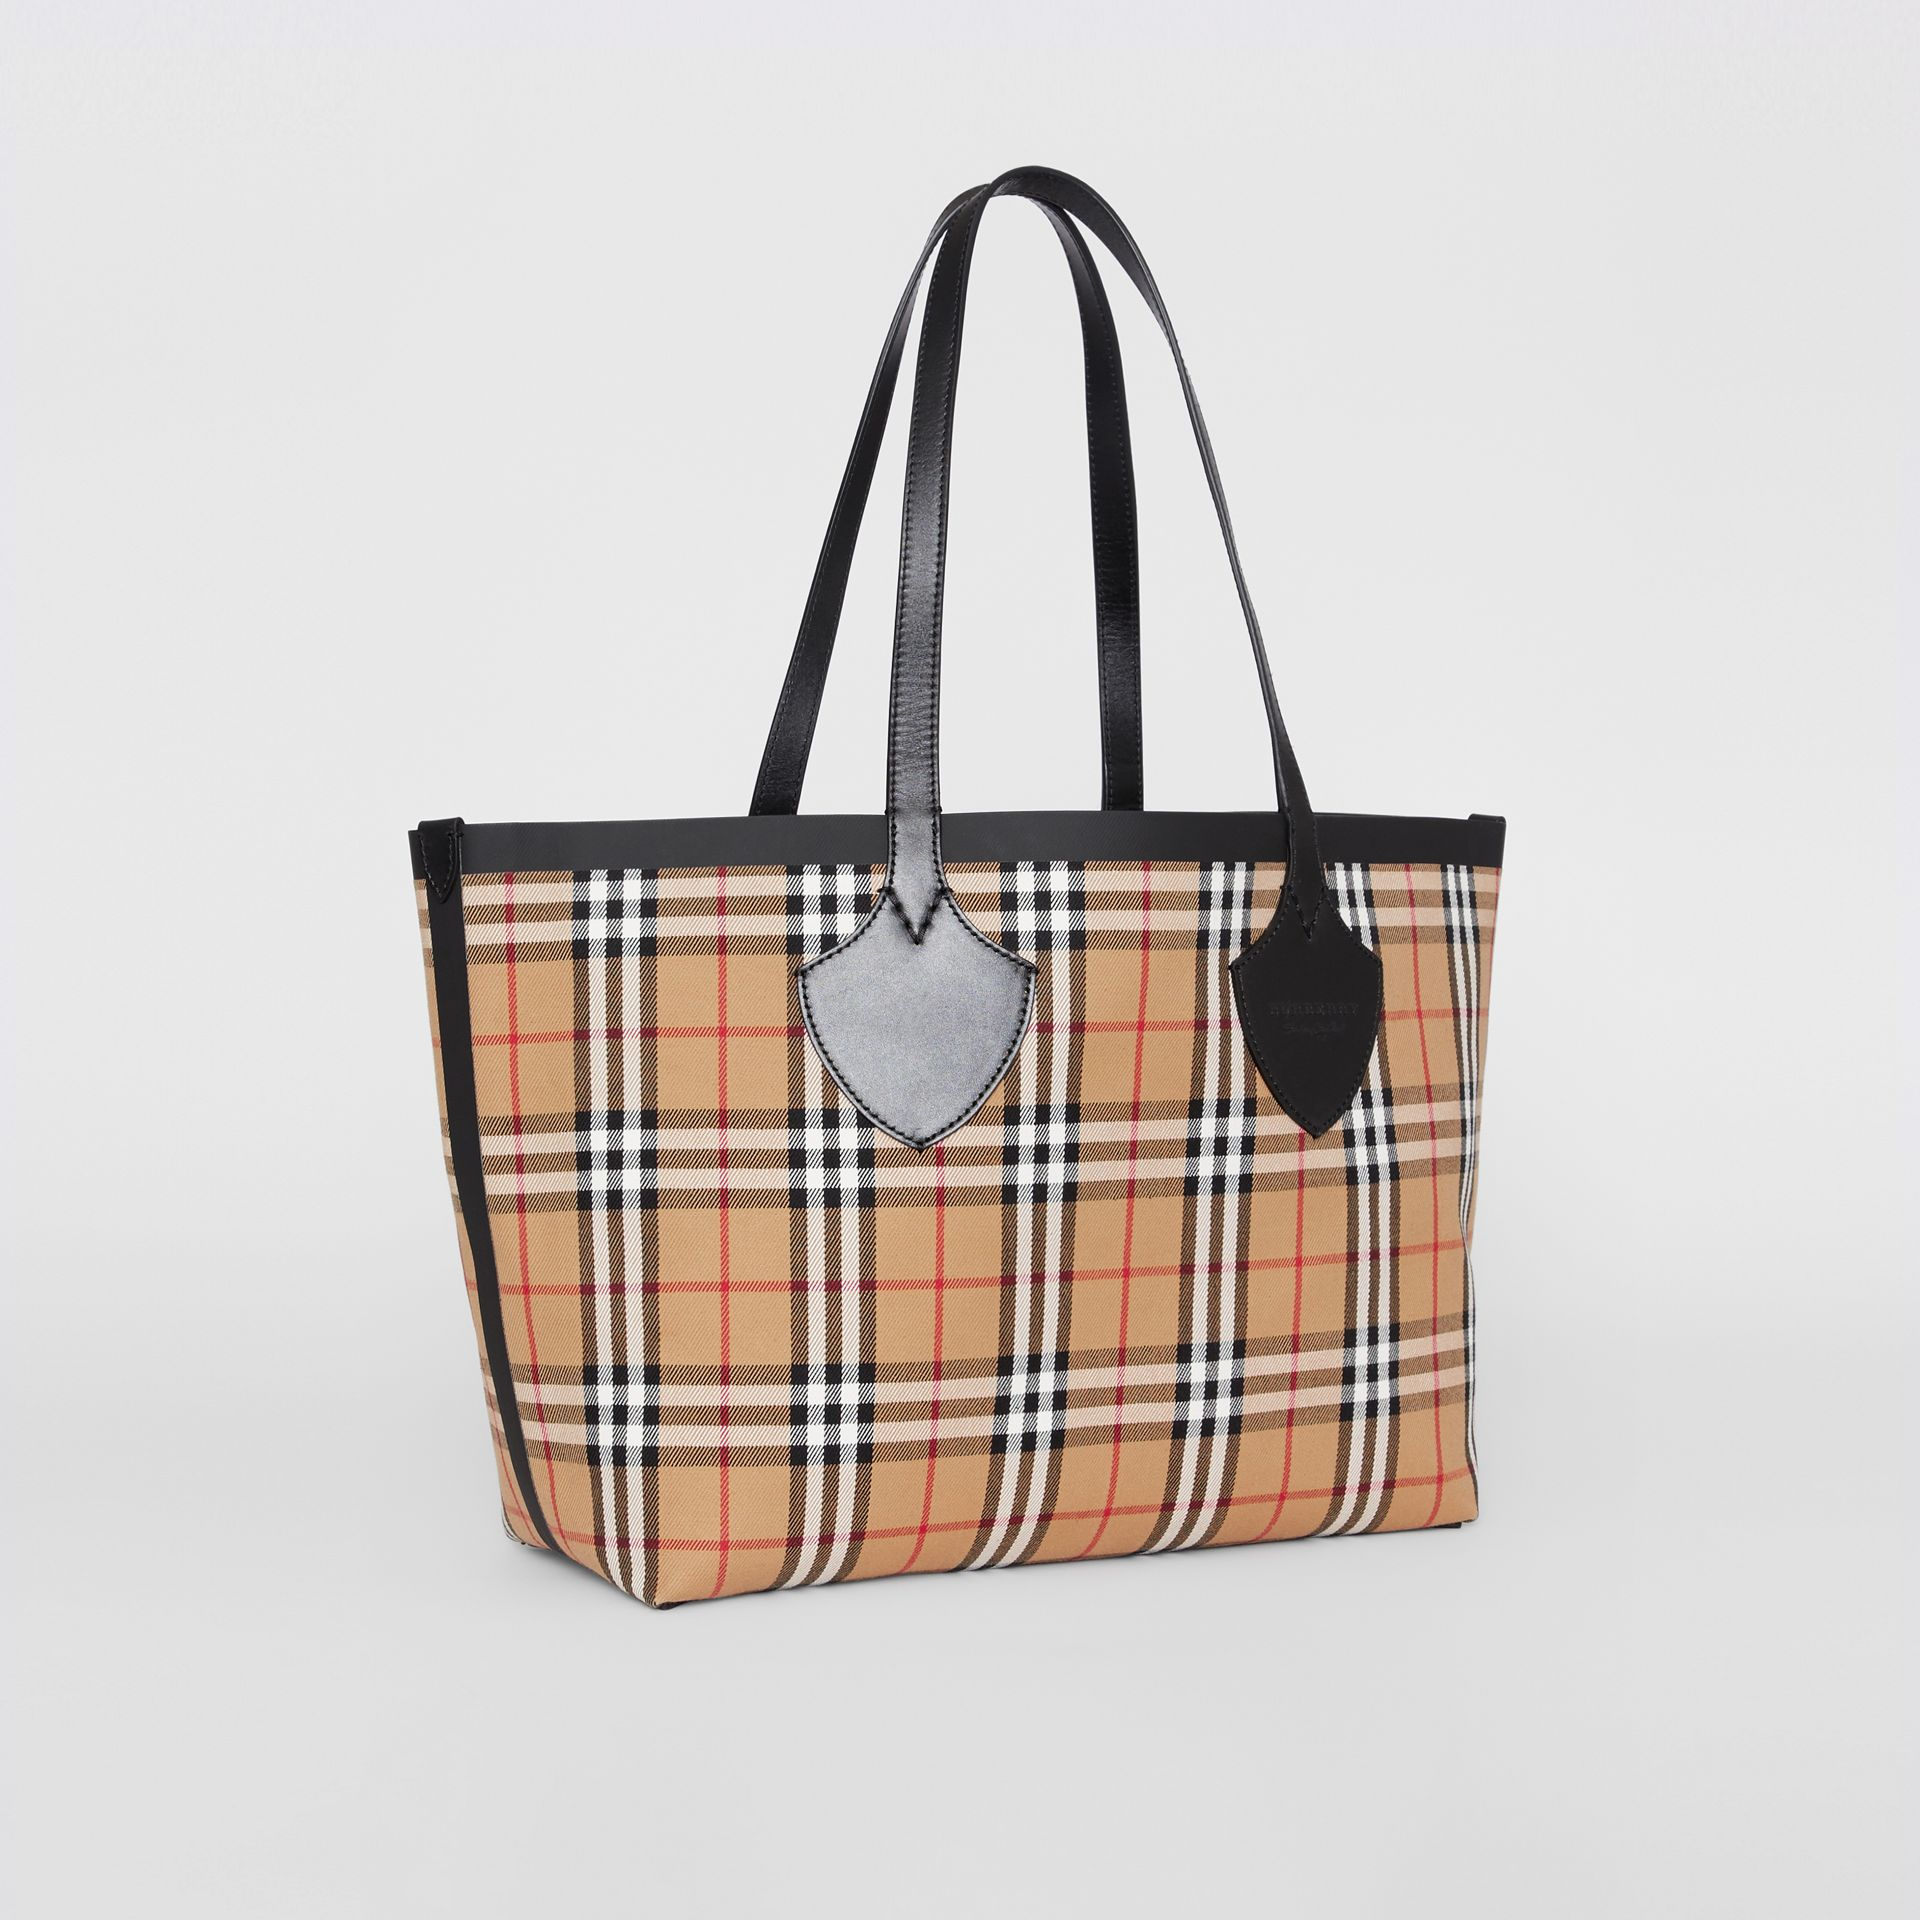 Sac tote The Giant moyen en Vintage check (Jaune Antique/rouge Vif) | Burberry - photo de la galerie 8